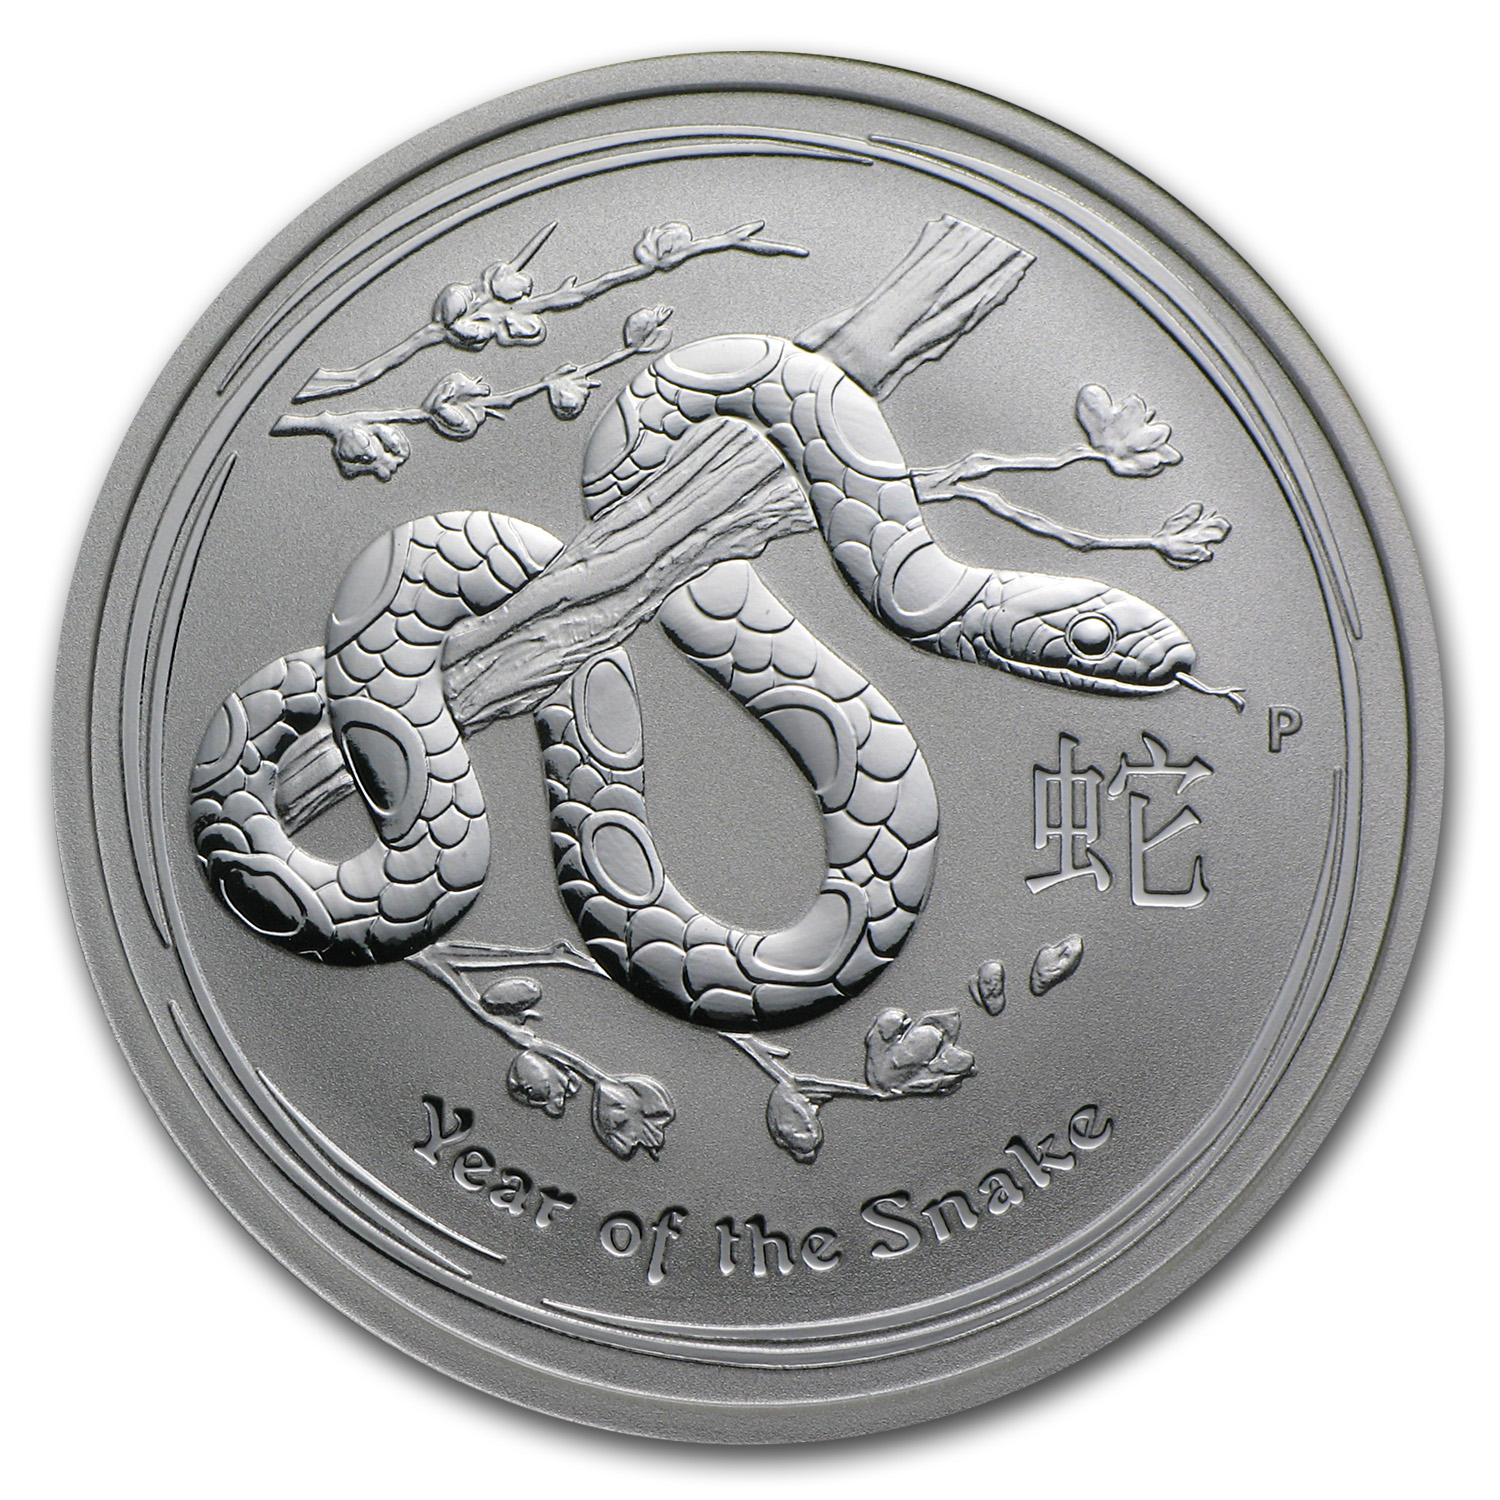 2013 Australia 2 oz Silver Year of the Snake BU